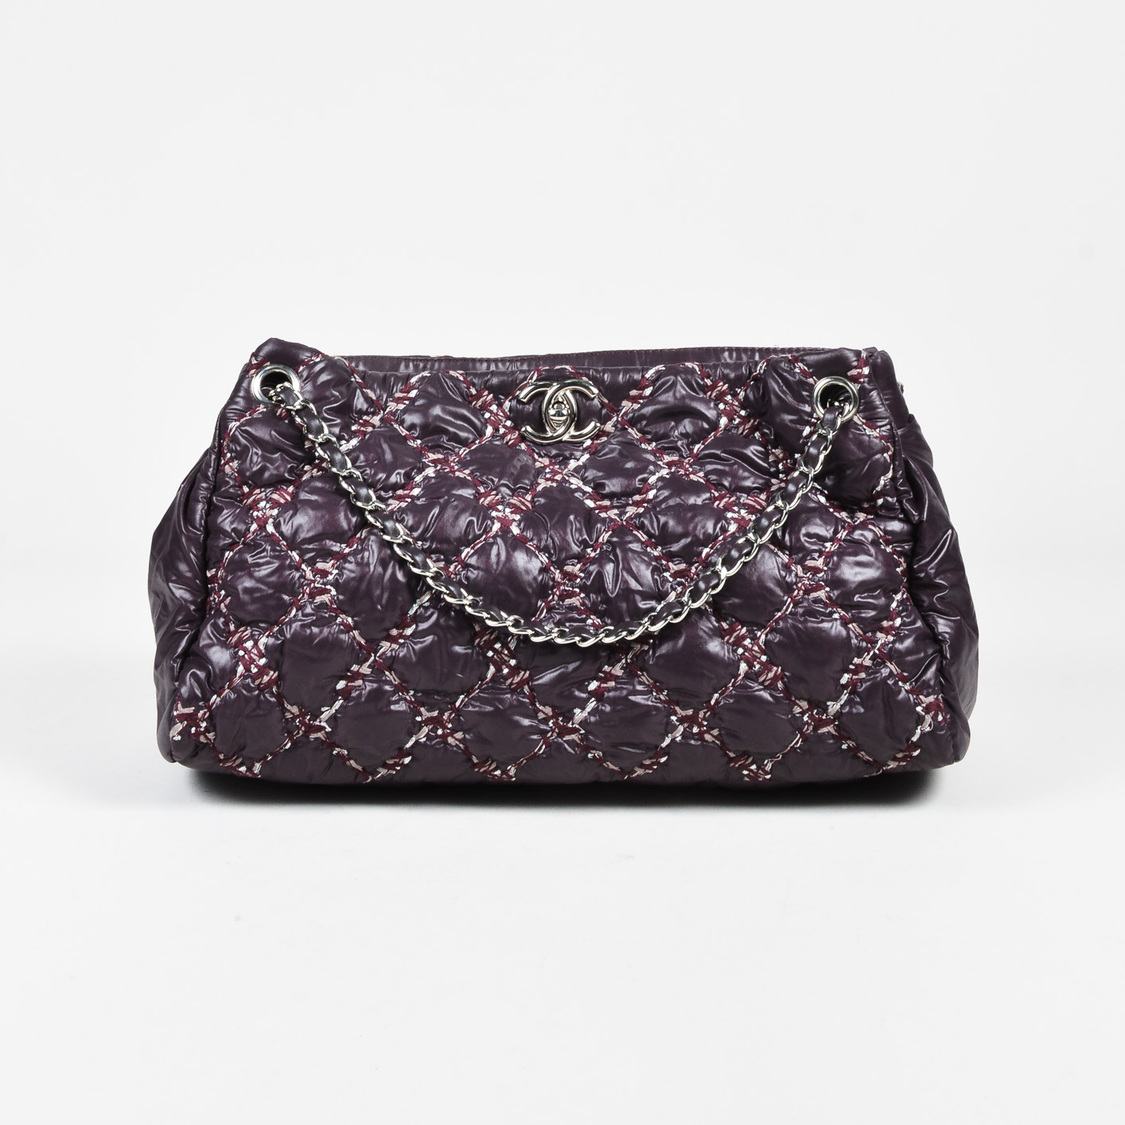 Chanel Purple Multi Nylon Quilted Bubble Tote Chain Link Bag - What is an invoice paypal chanel online store